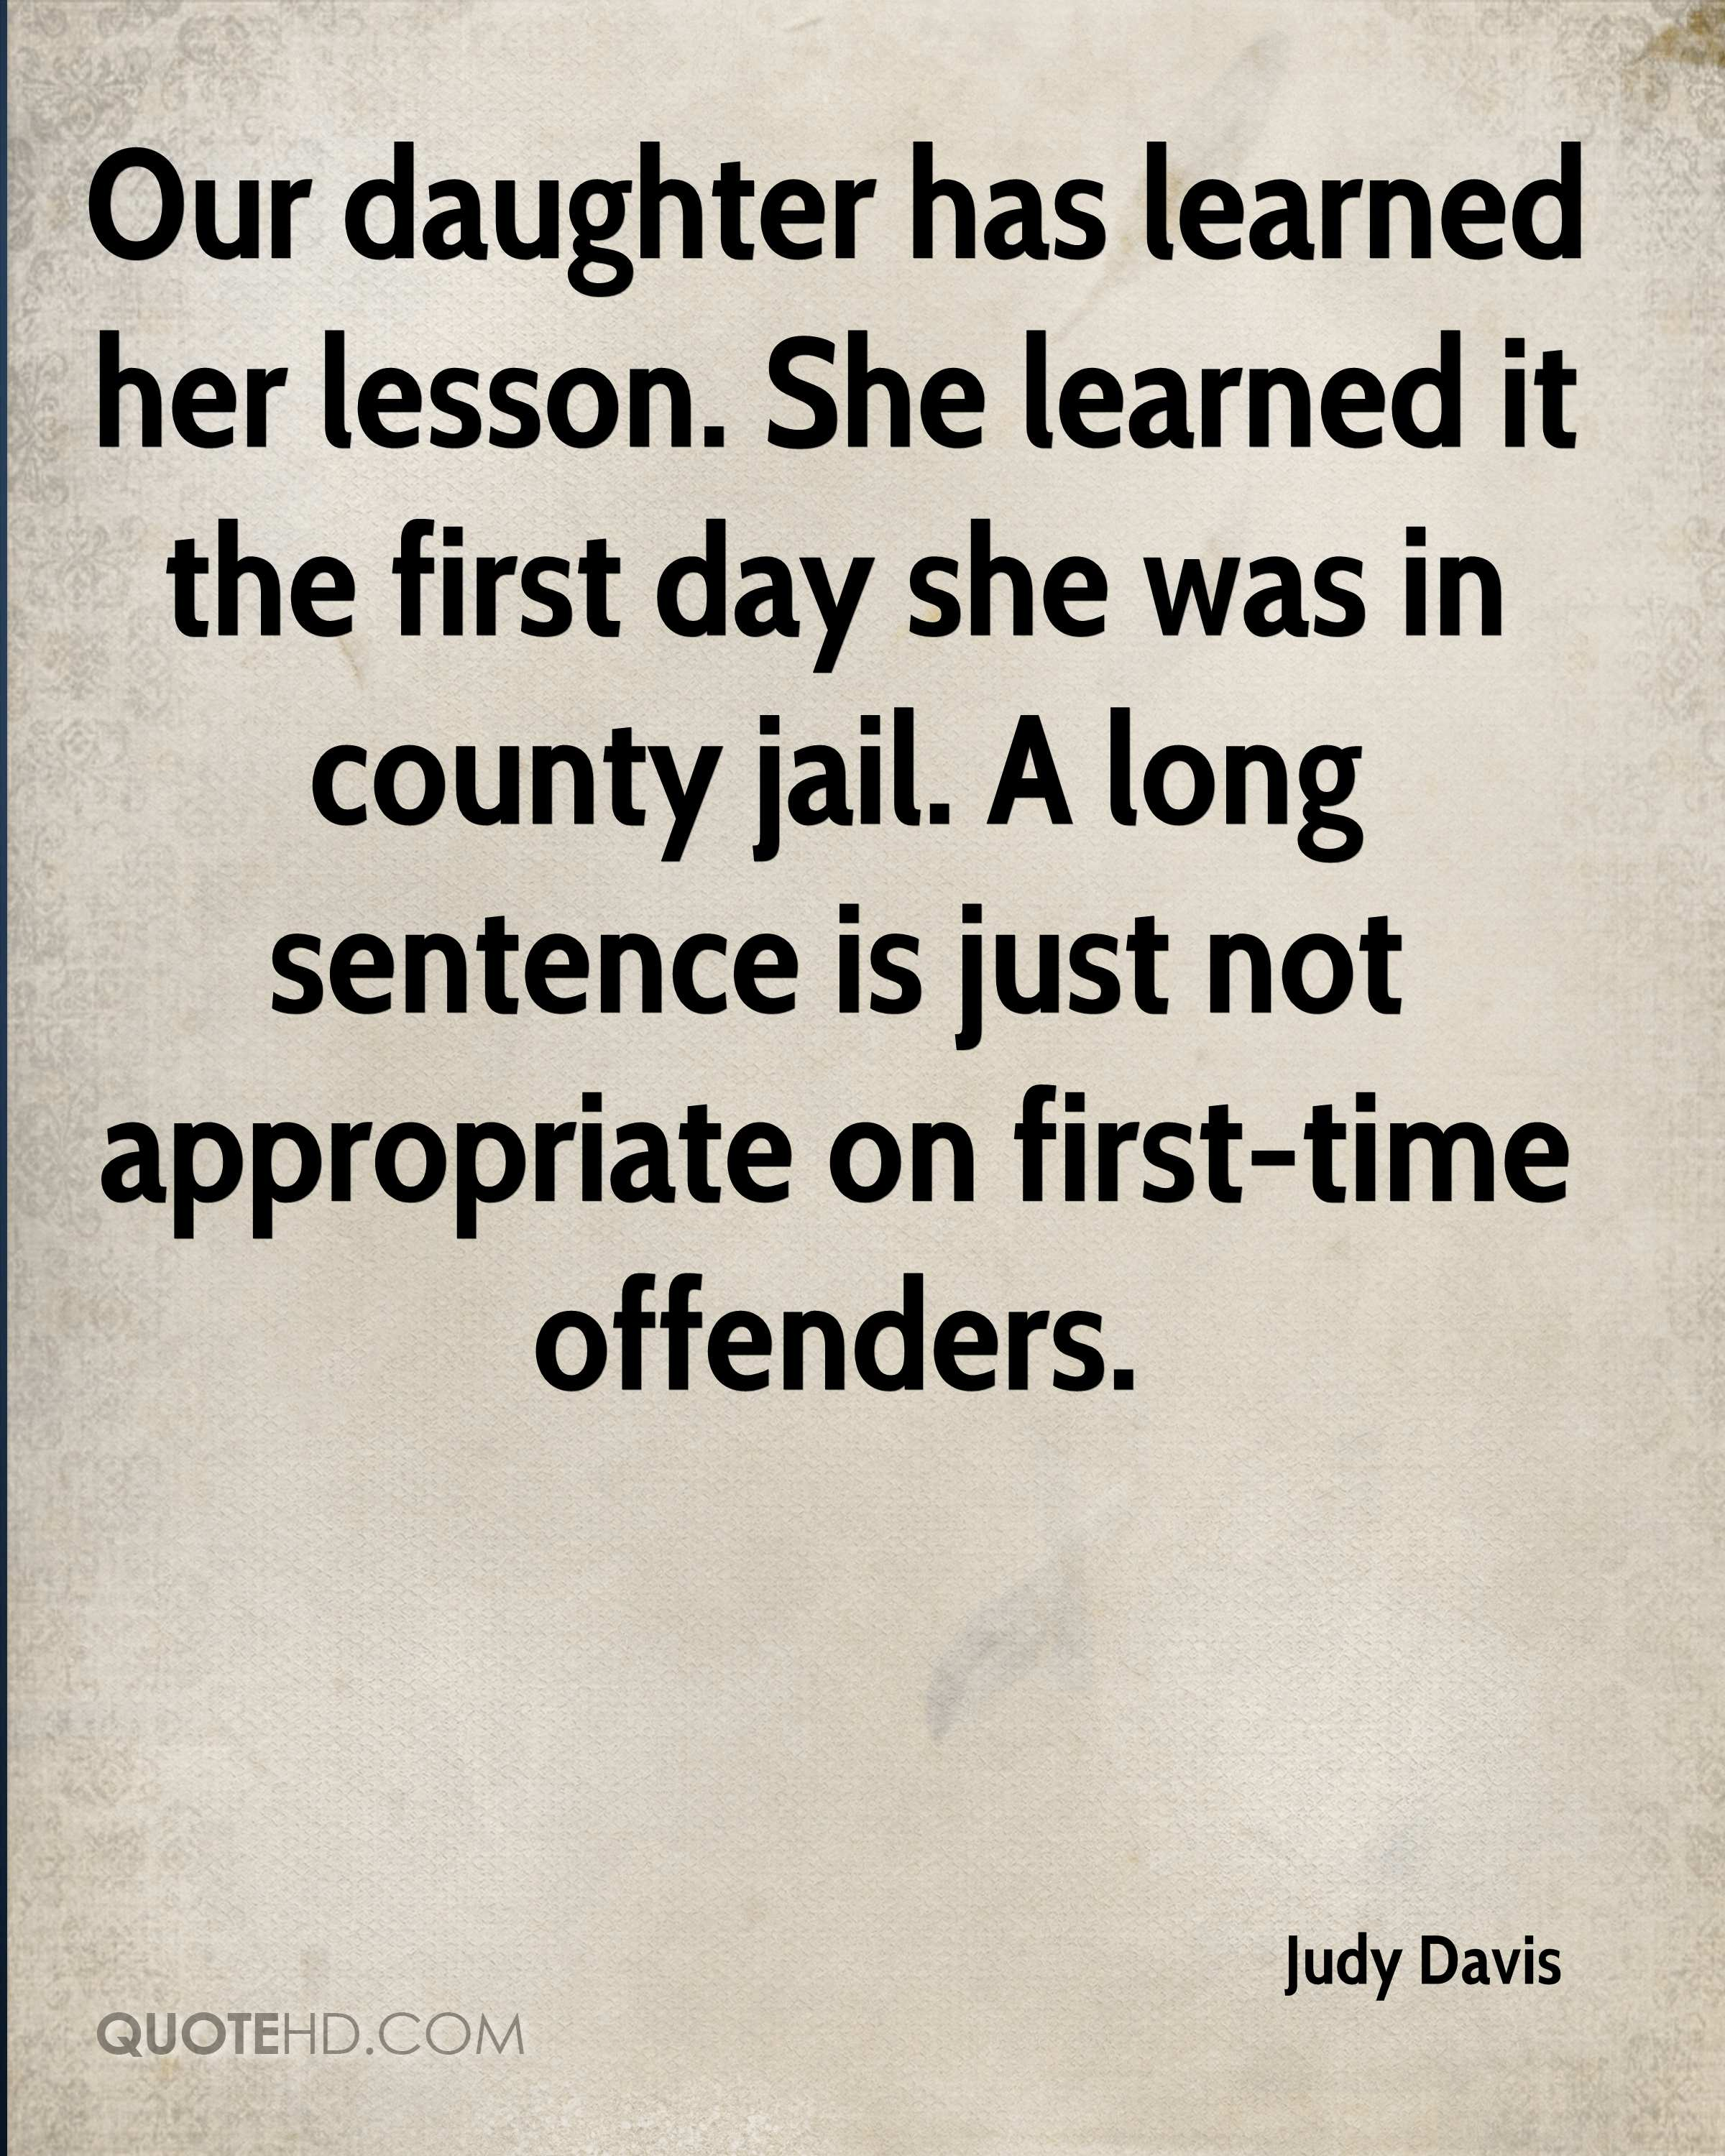 Our daughter has learned her lesson. She learned it the first day she was in county jail. A long sentence is just not appropriate on first-time offenders.